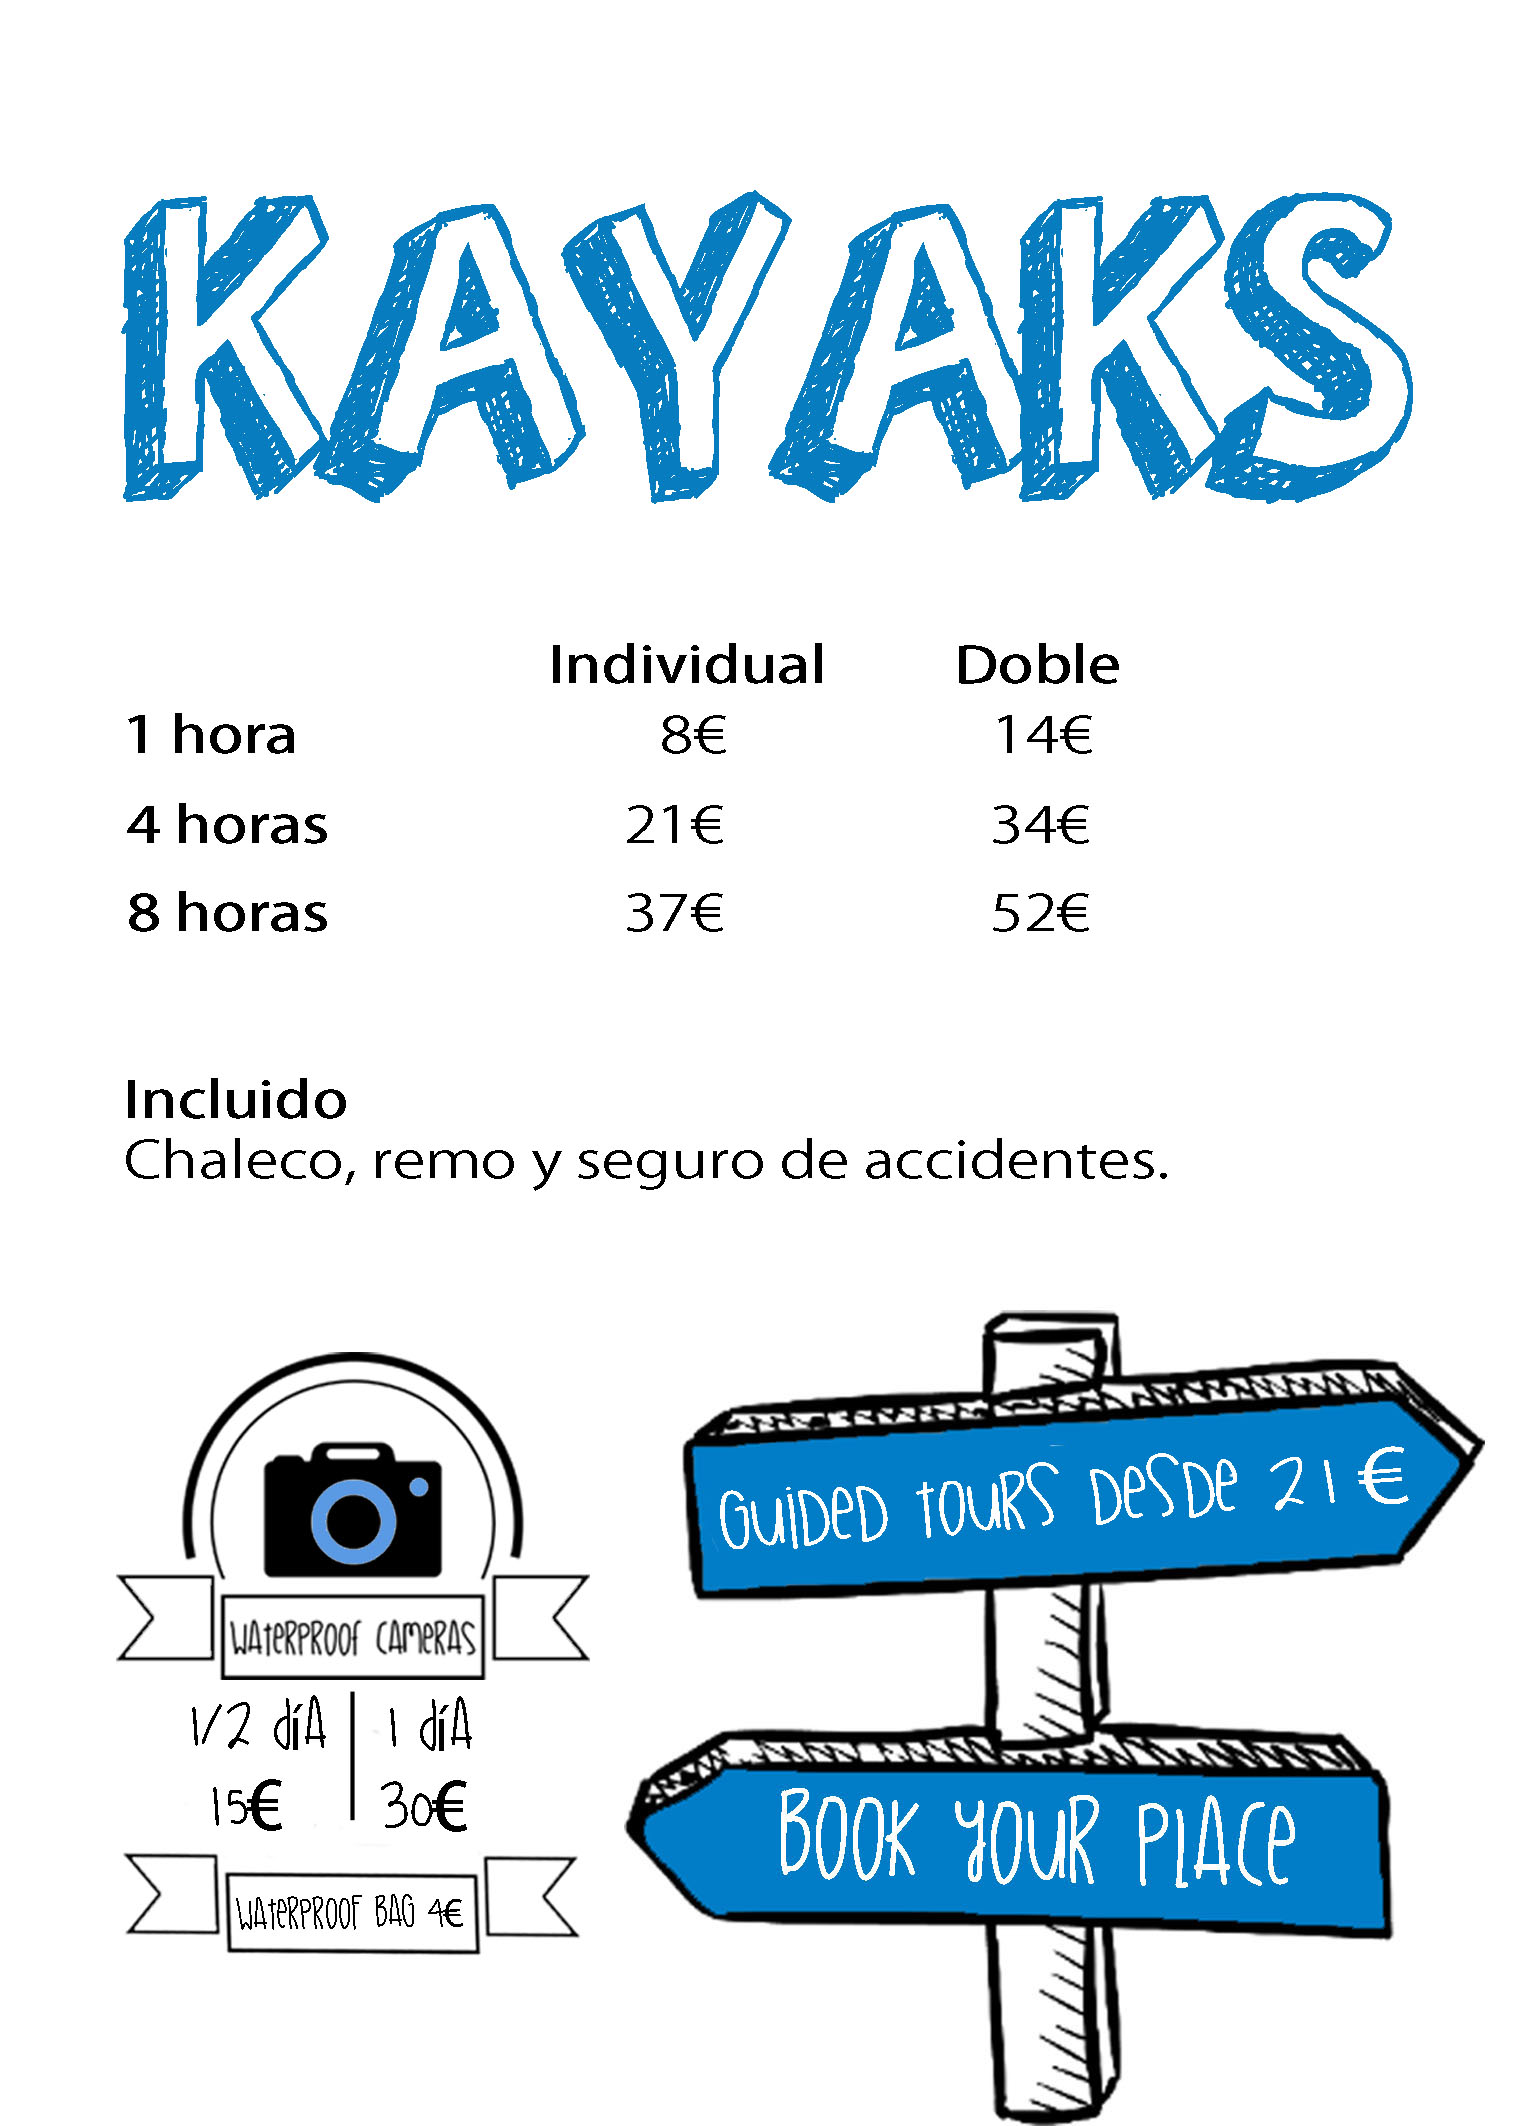 Kayaks for rent, Guided tours